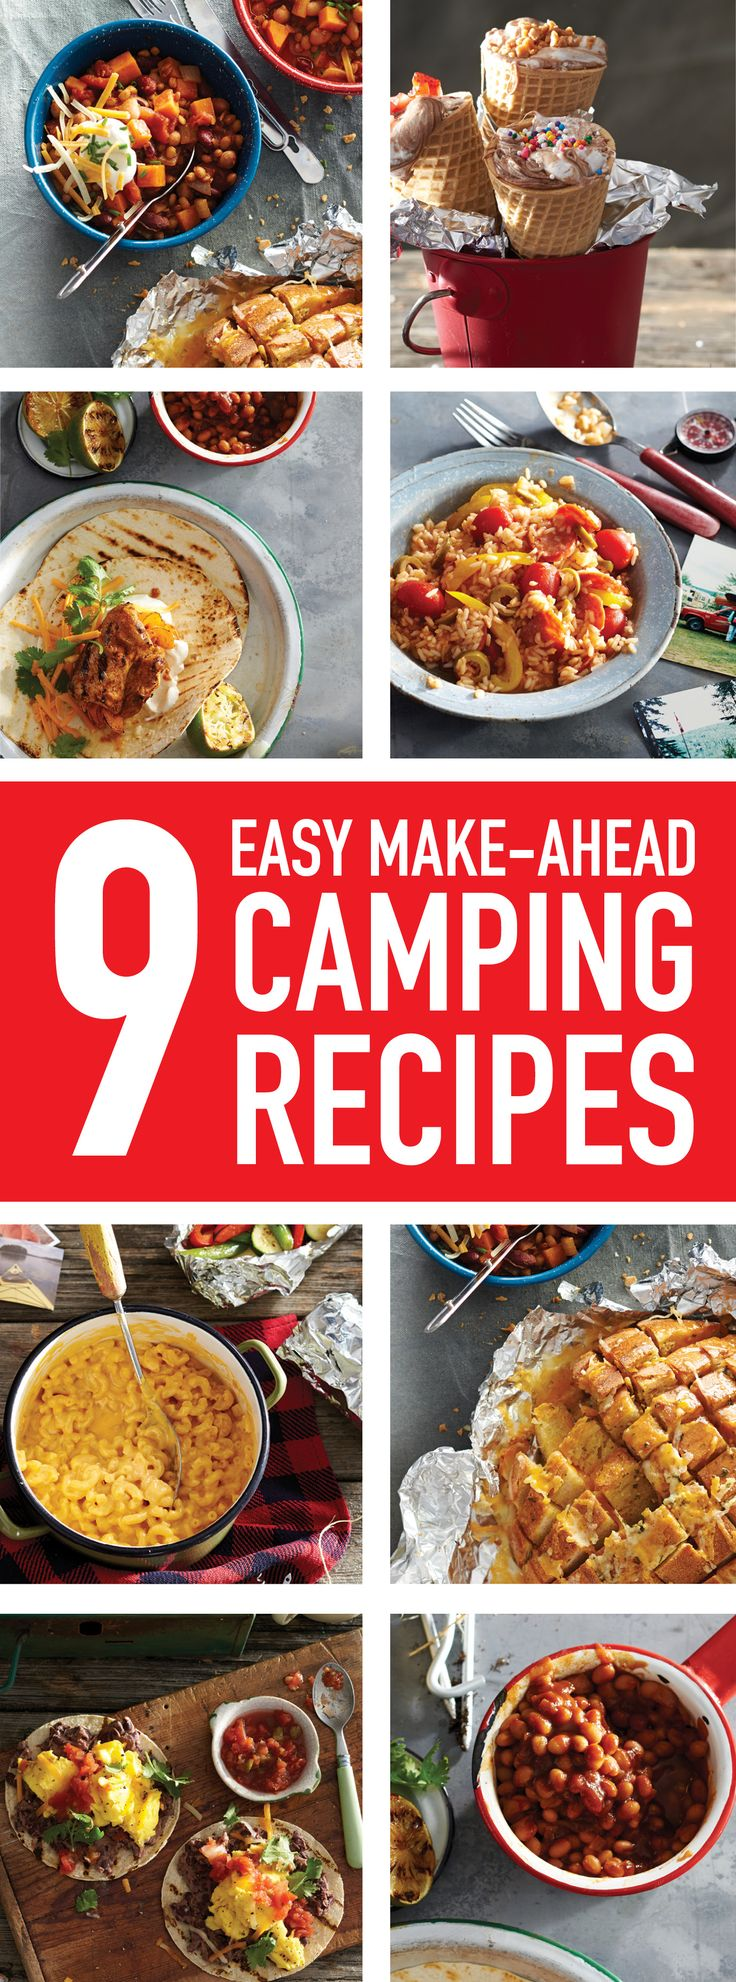 Prep in the kitchen, pack in the cooler and do (almost) nothing but enjoy these simple make-ahead camping meals by the light of the fire.